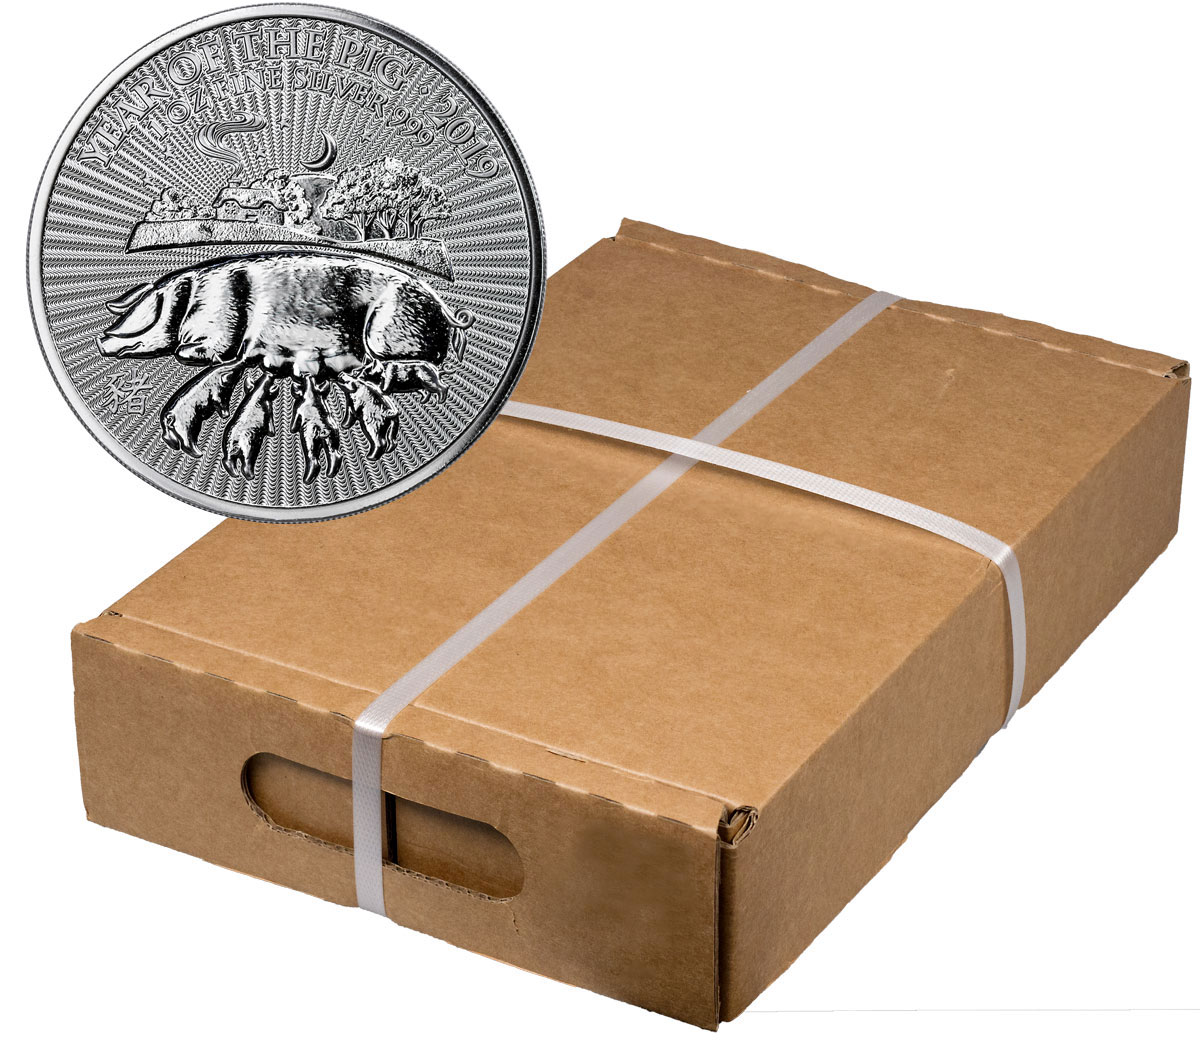 Monster Box of 100 - 2019 Great Britain Year of the Pig 1 oz Silver Lunar £2 Coins GEM BU